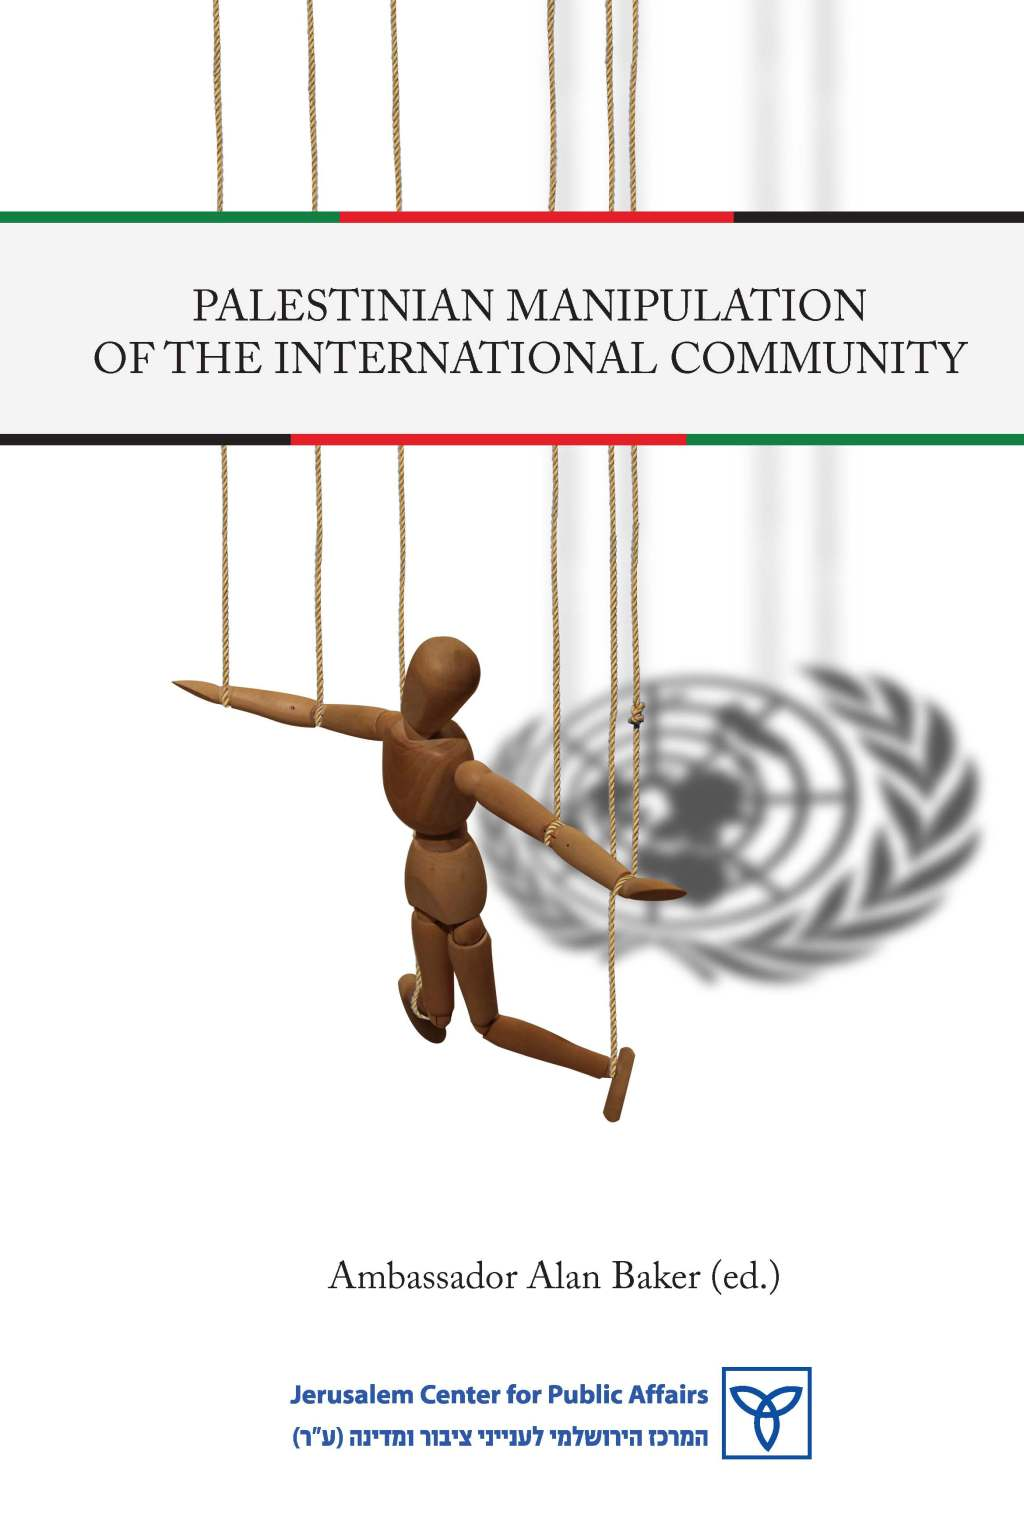 Palestinian Manipulation of the International Community